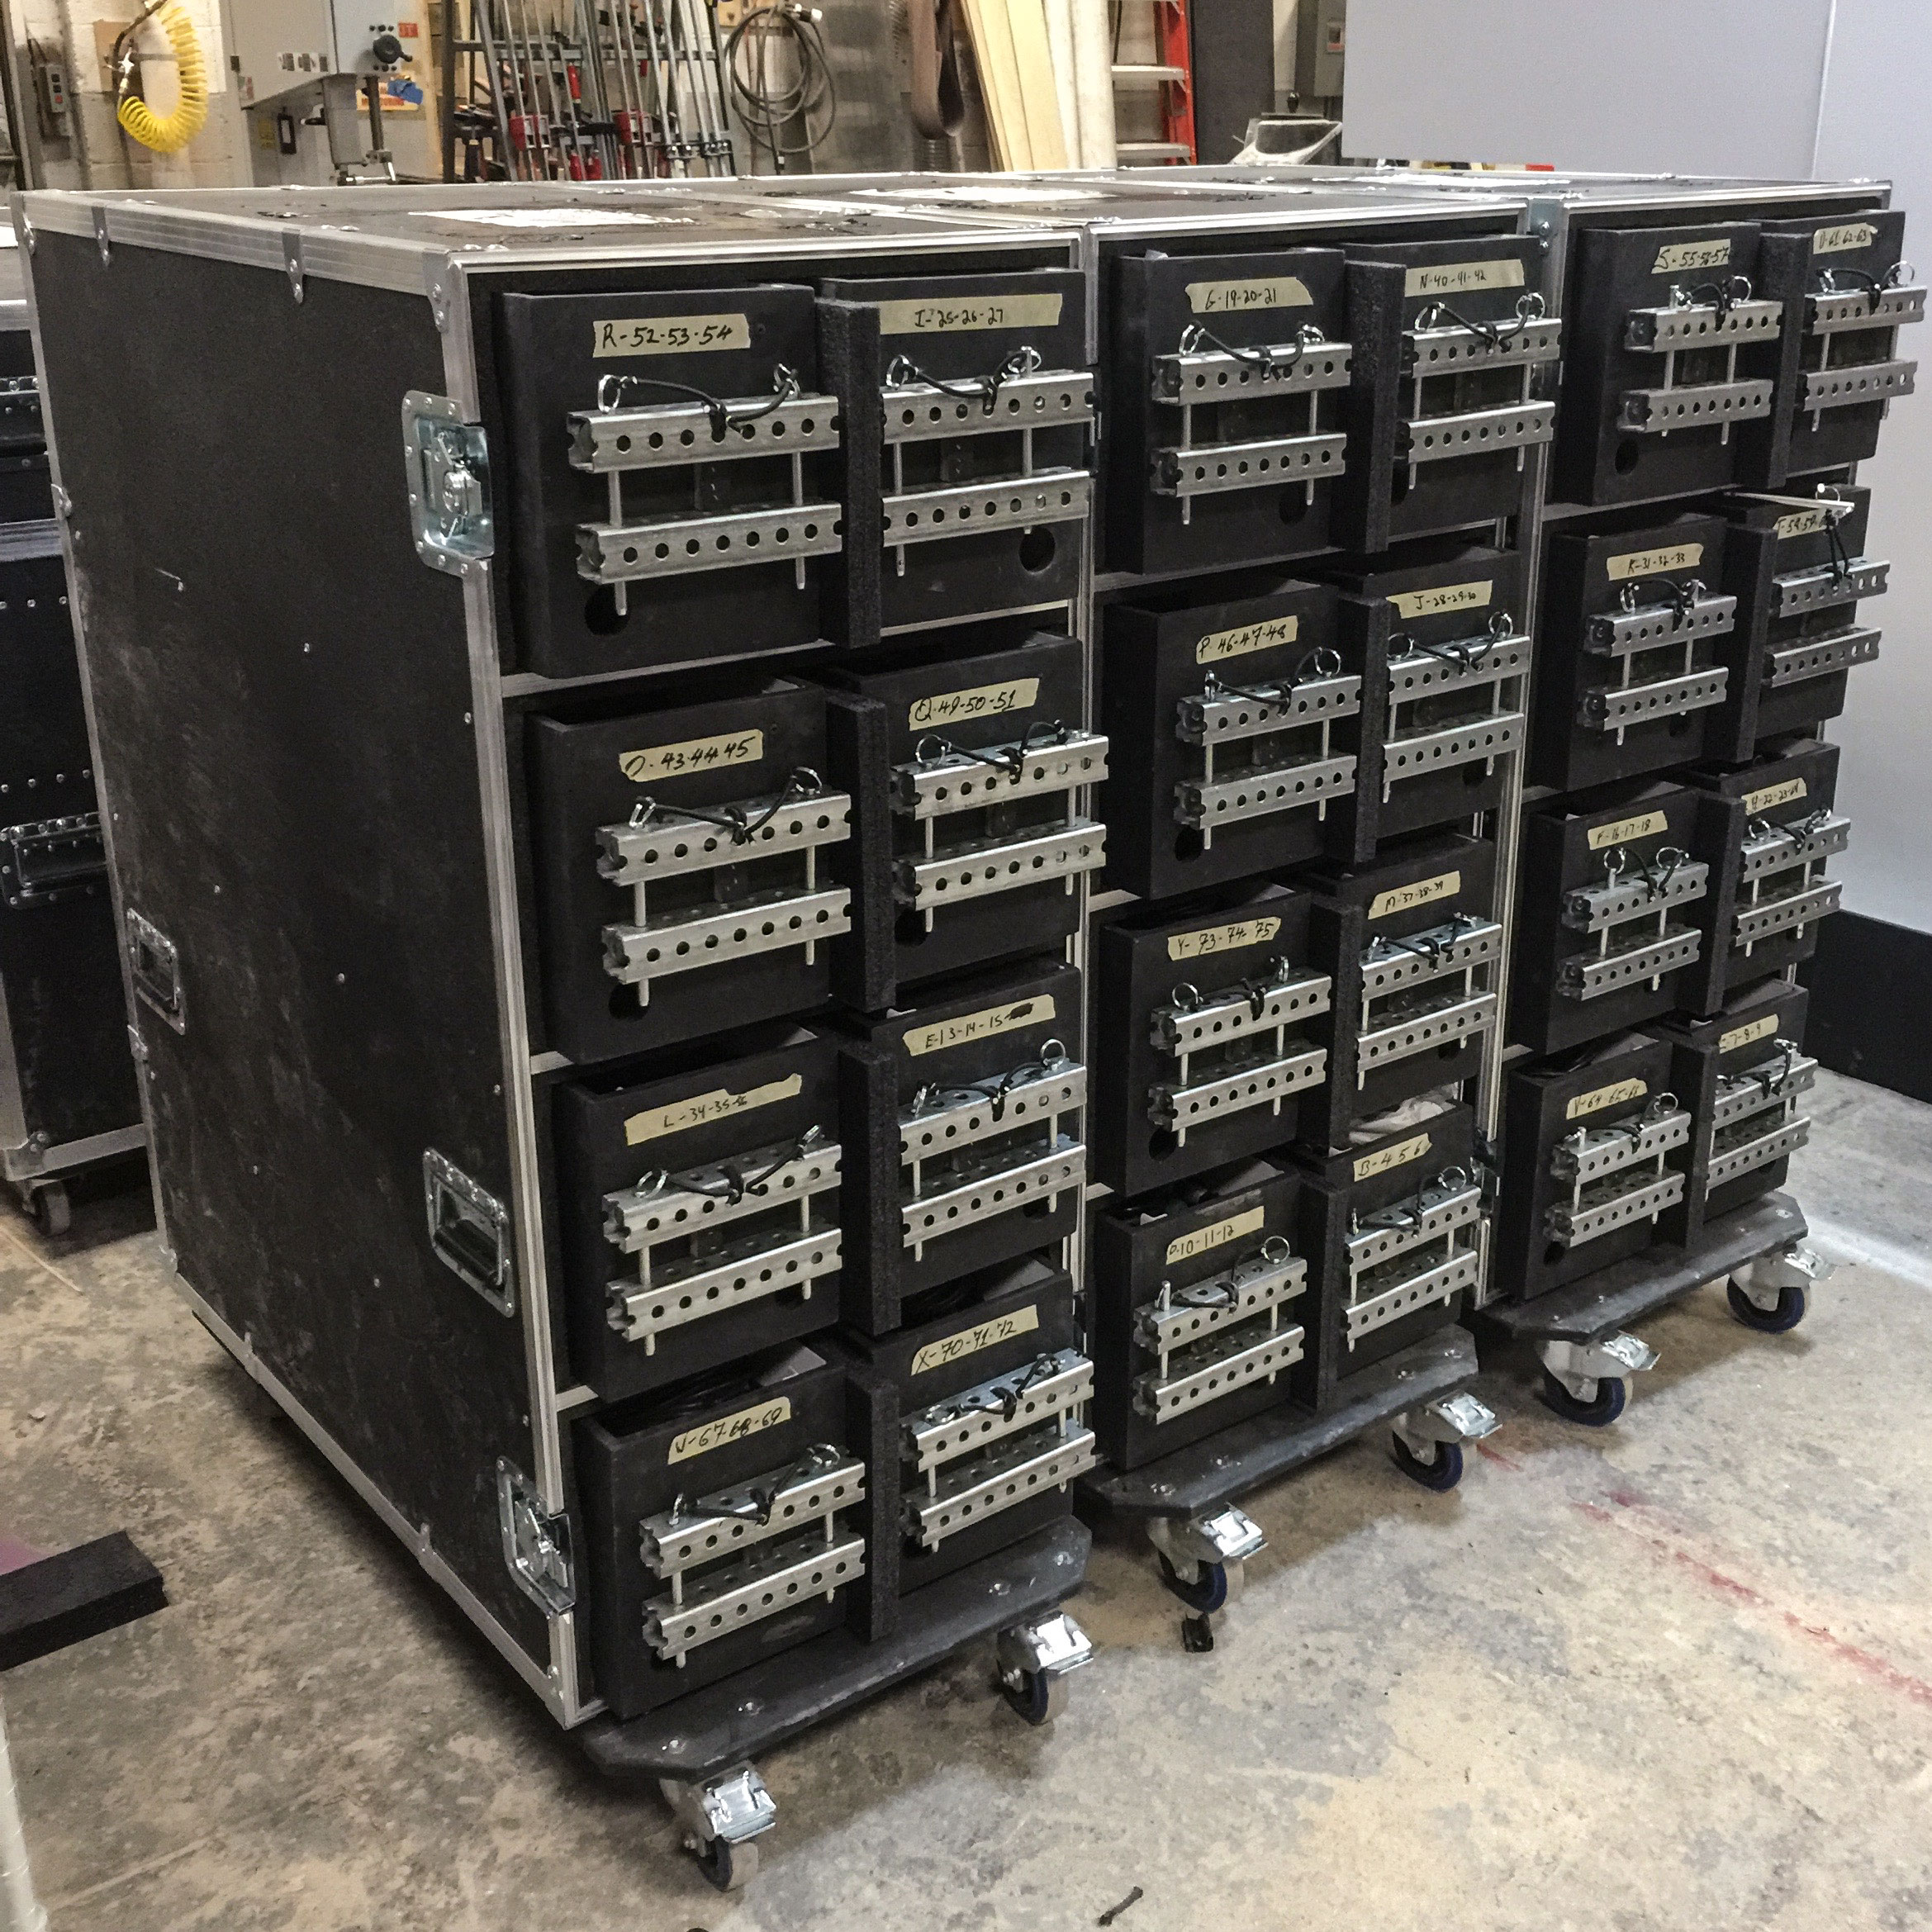 Lighting-Boxes-Road-Case.jpg